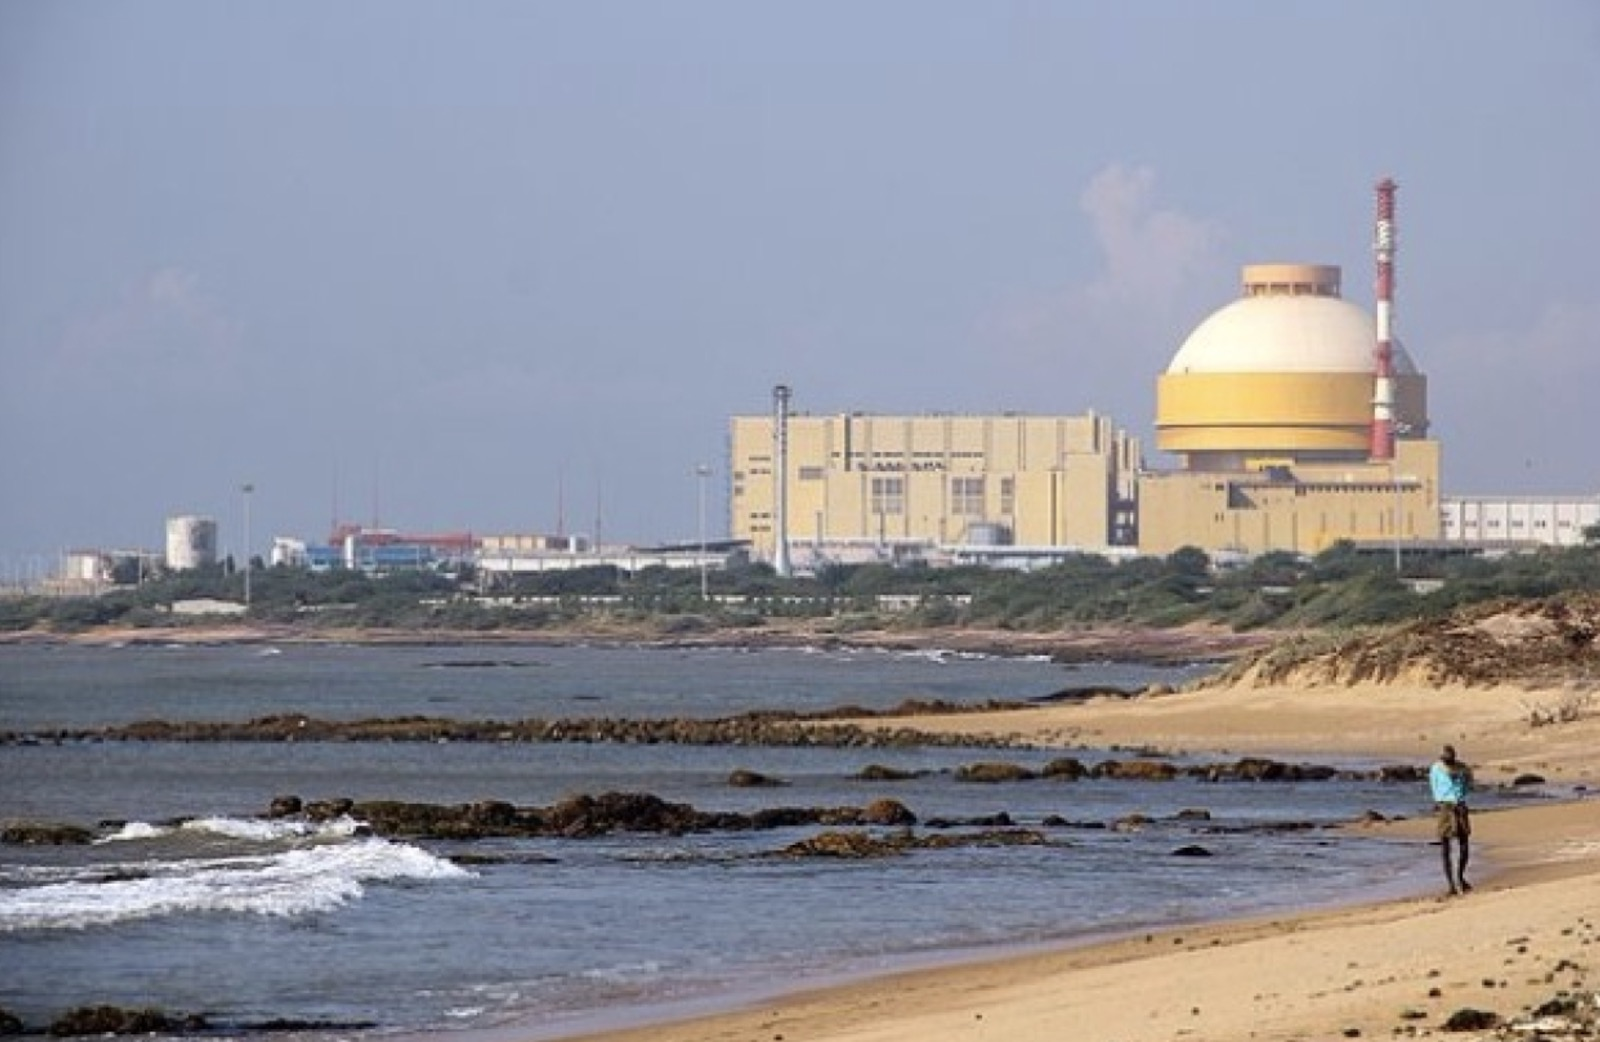 image of Indian Nuclear Power Plant